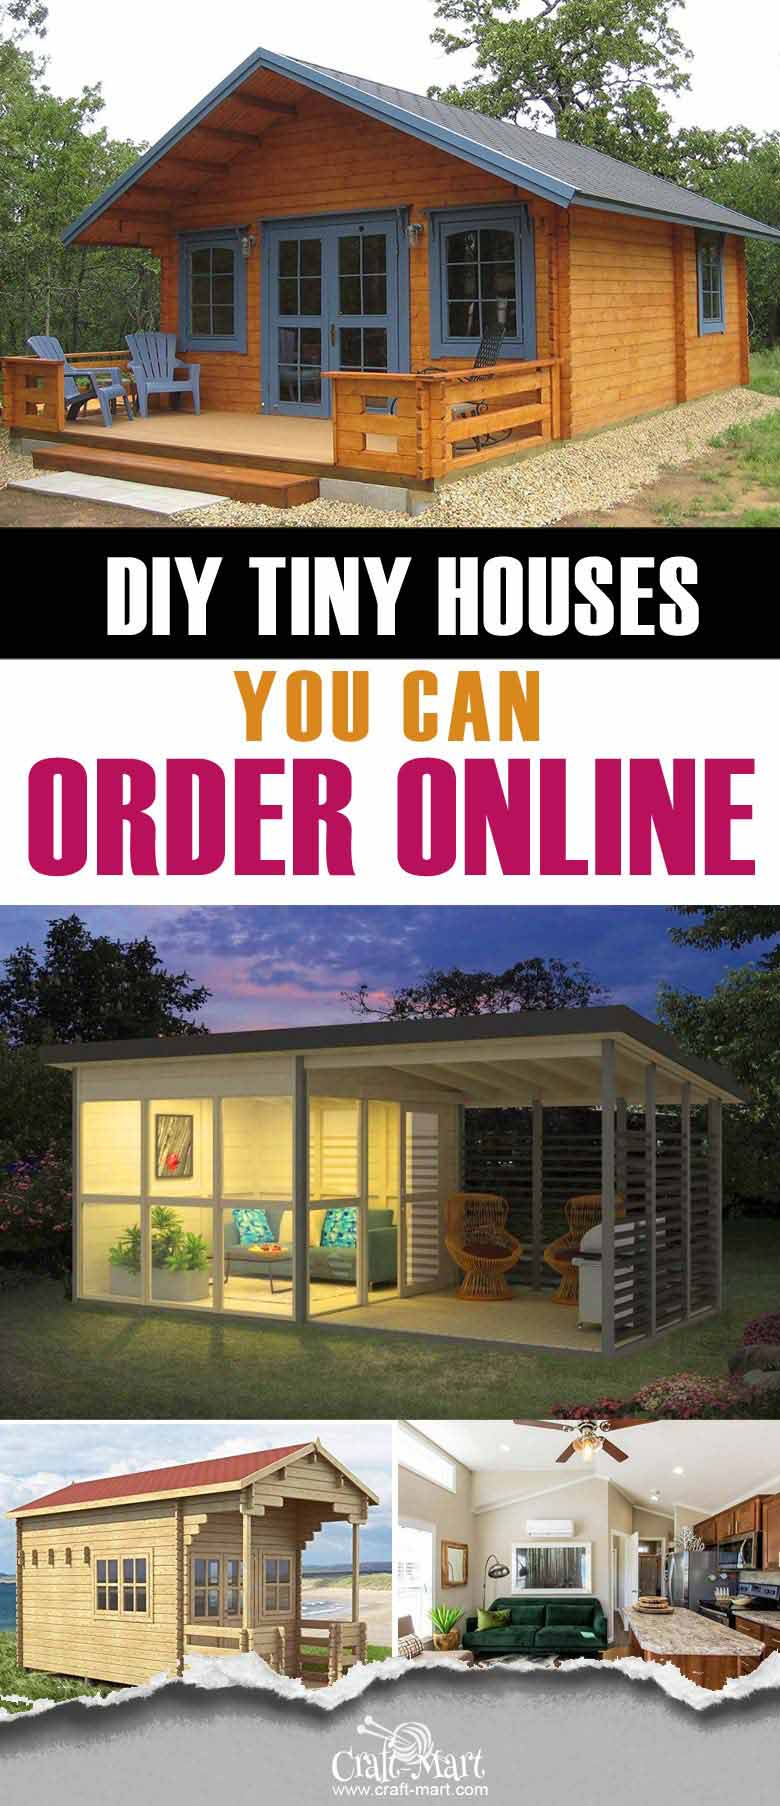 Affordable prefab tiny house kits that you can order online